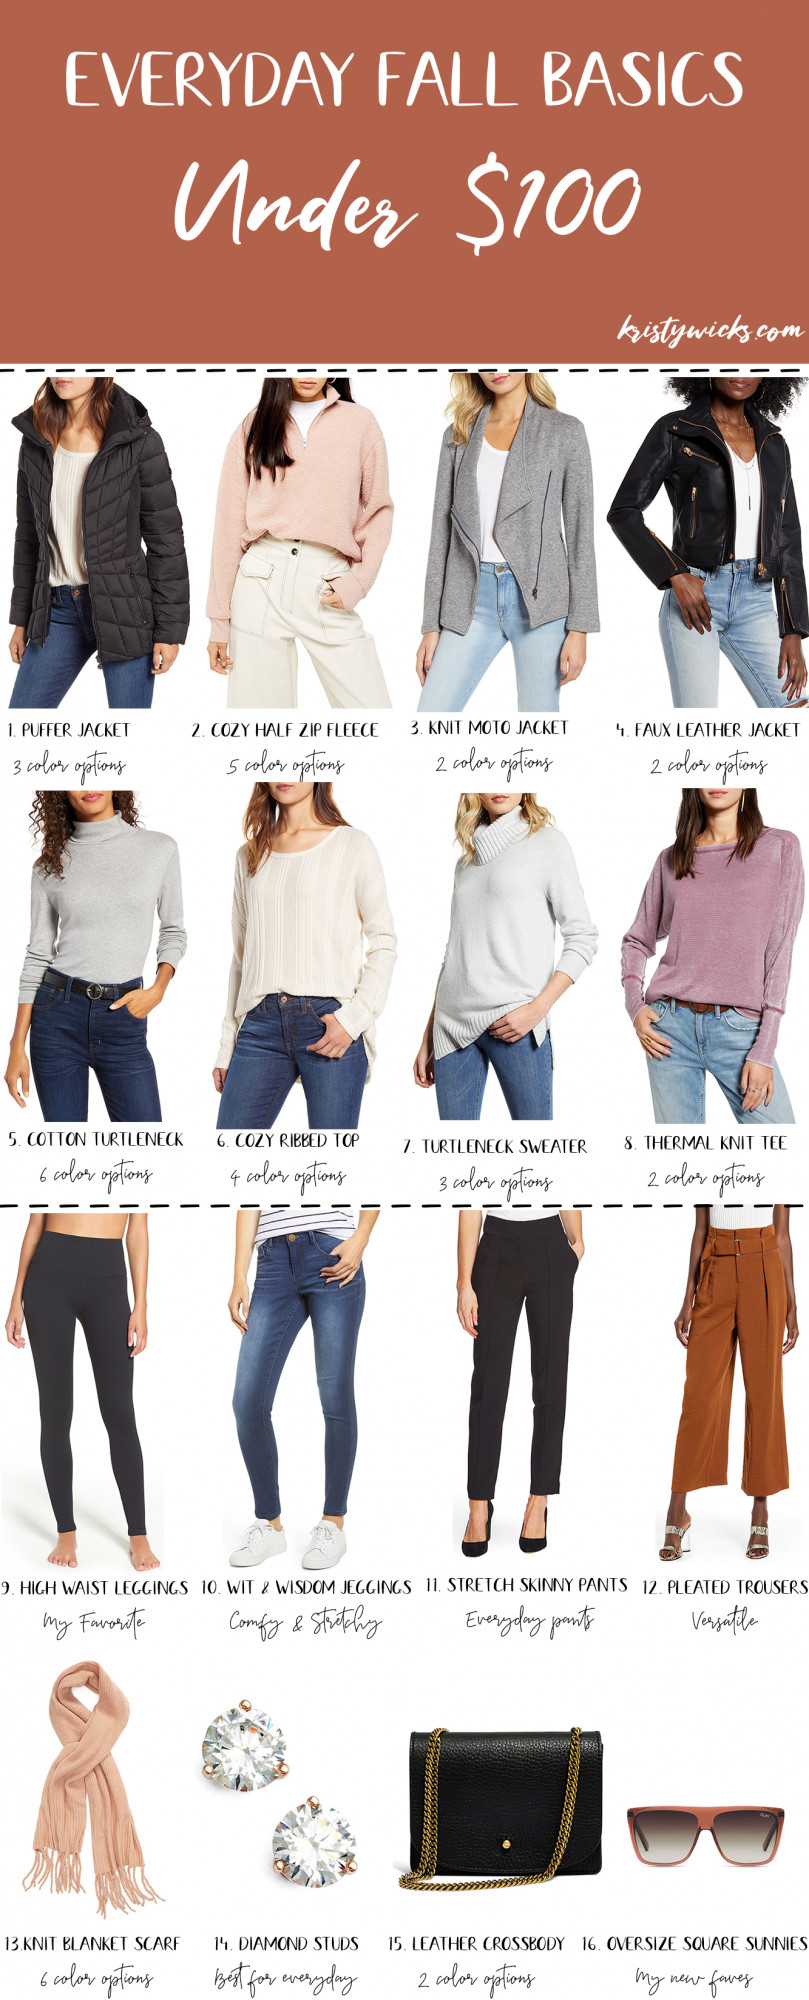 Everyday Fall Basics Under $100 - Fall is all about wearability and comfiness while the weather cools down. We rounded up our favorite autumnal outfits.